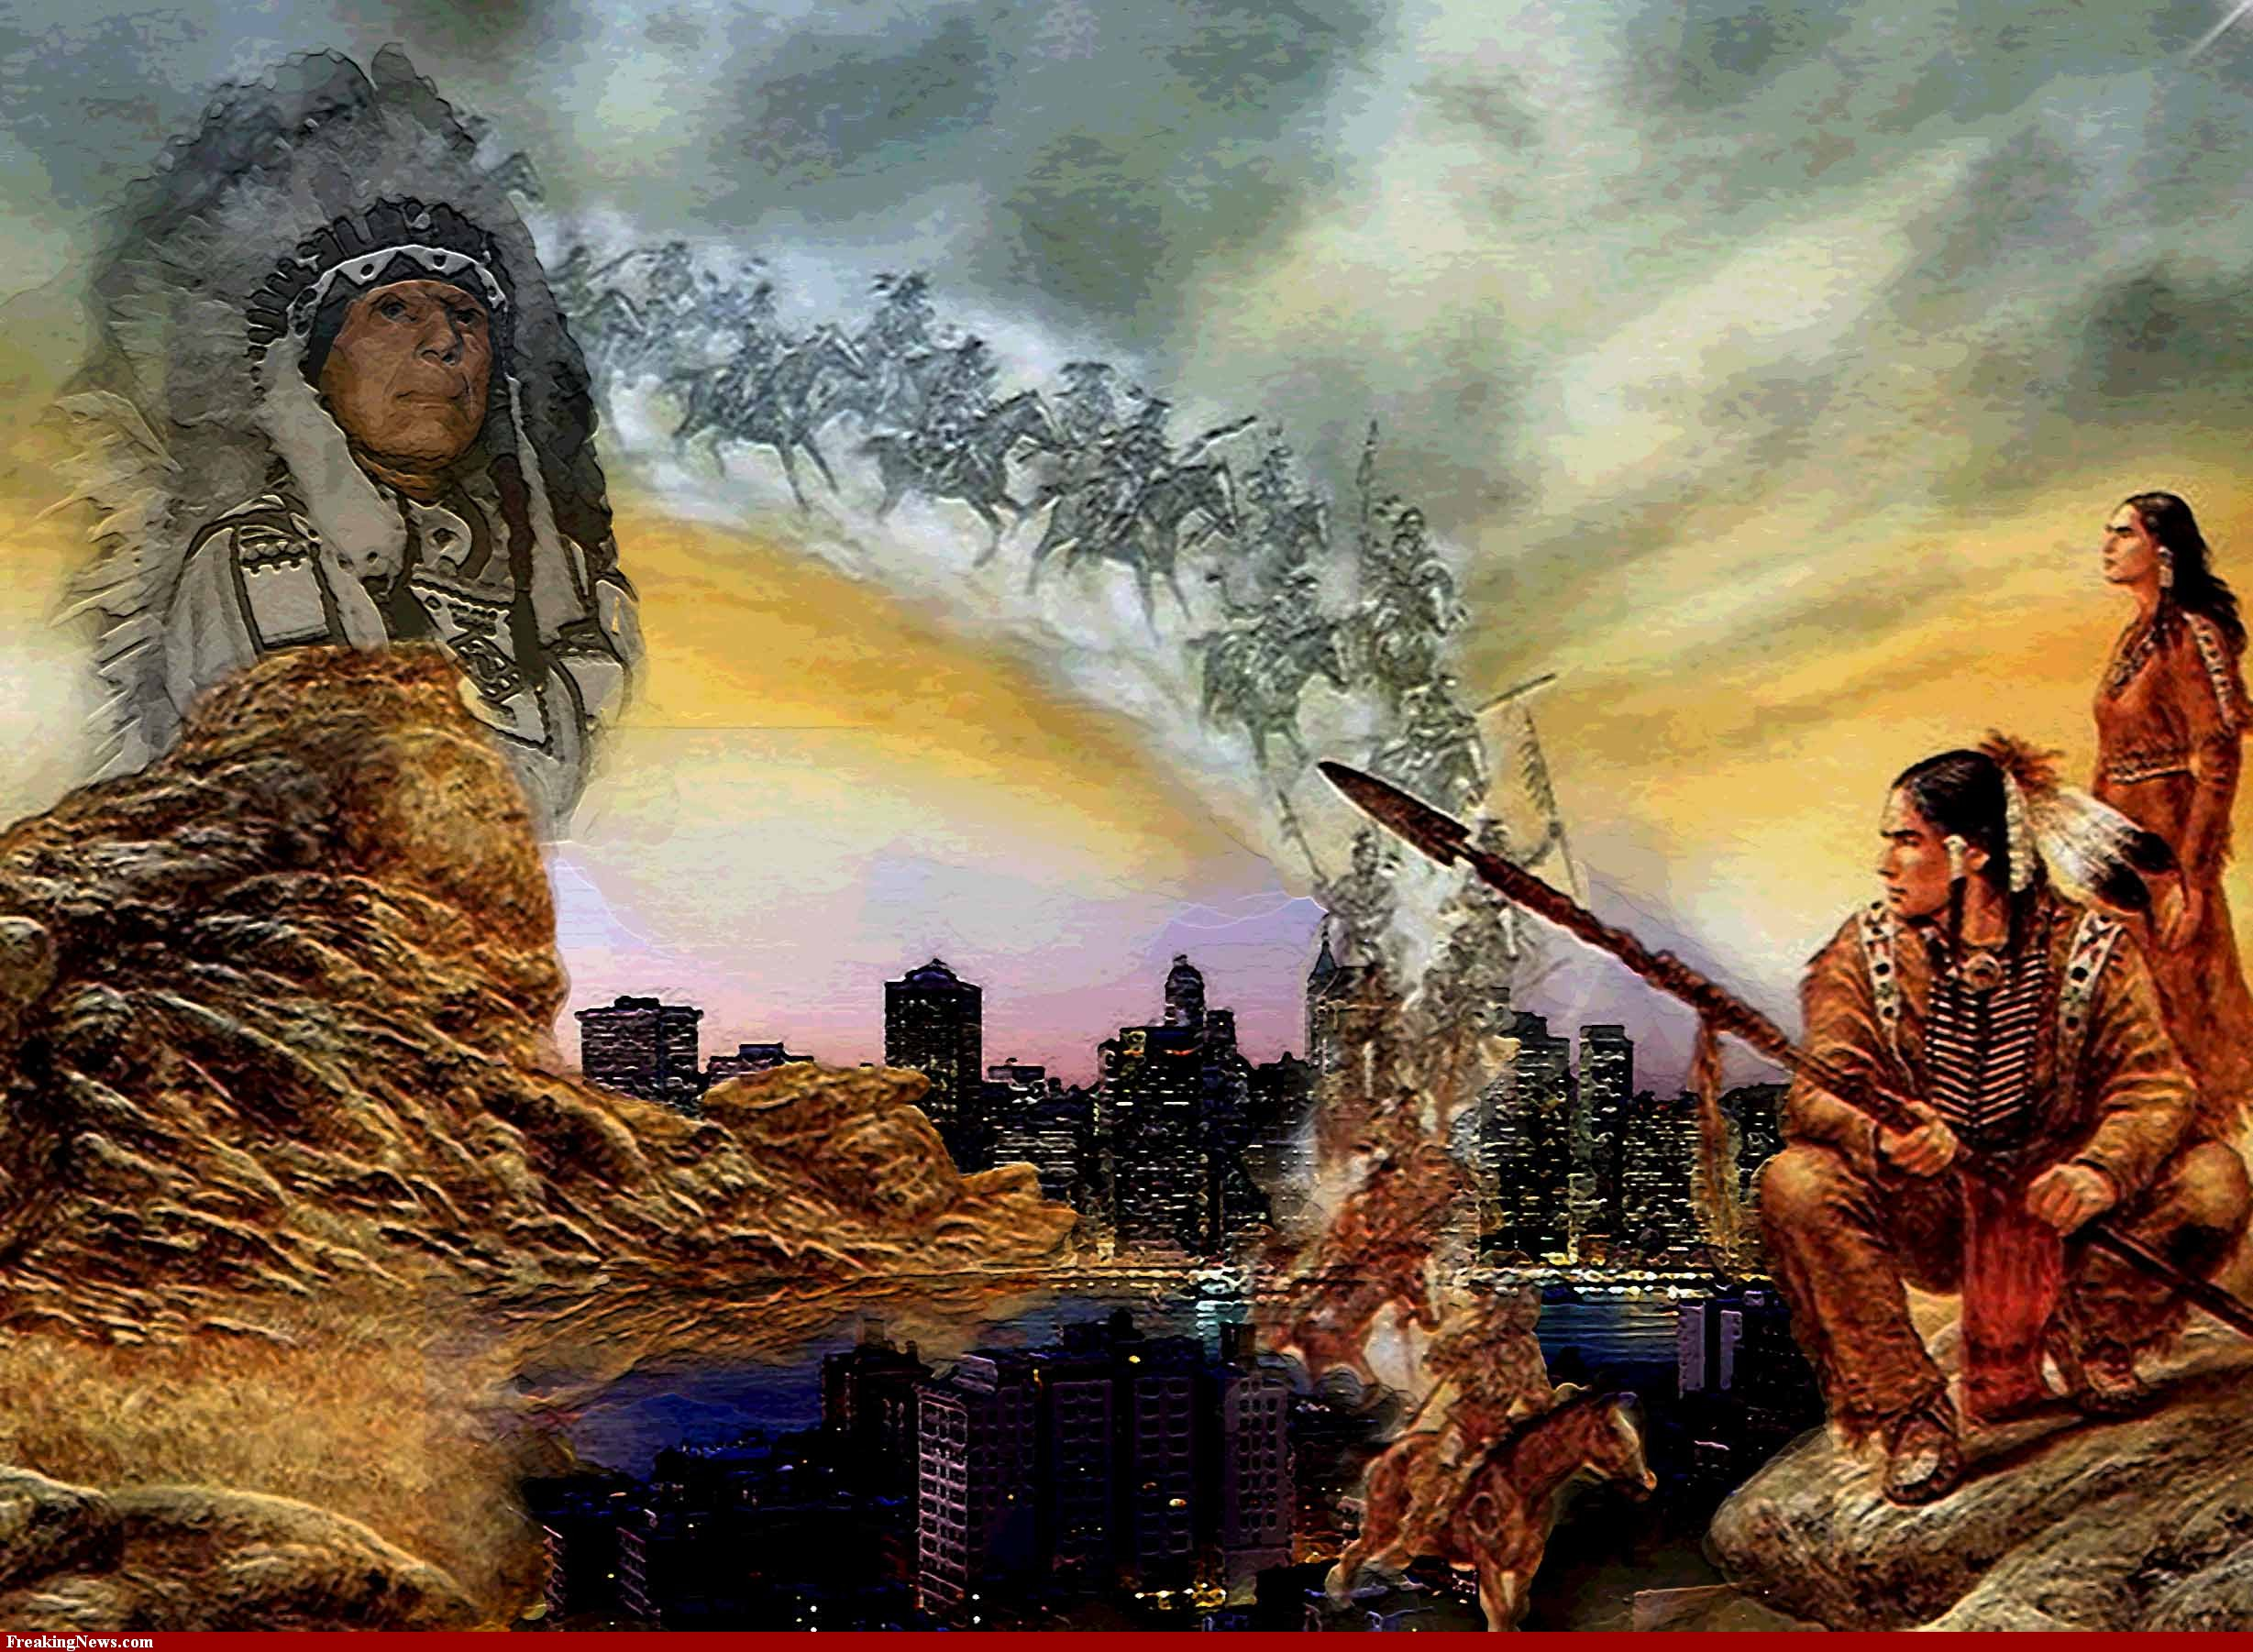 Hd Wallpapers Native American Indian Screensavers 2457 x 1802 670 kB 2457x1802